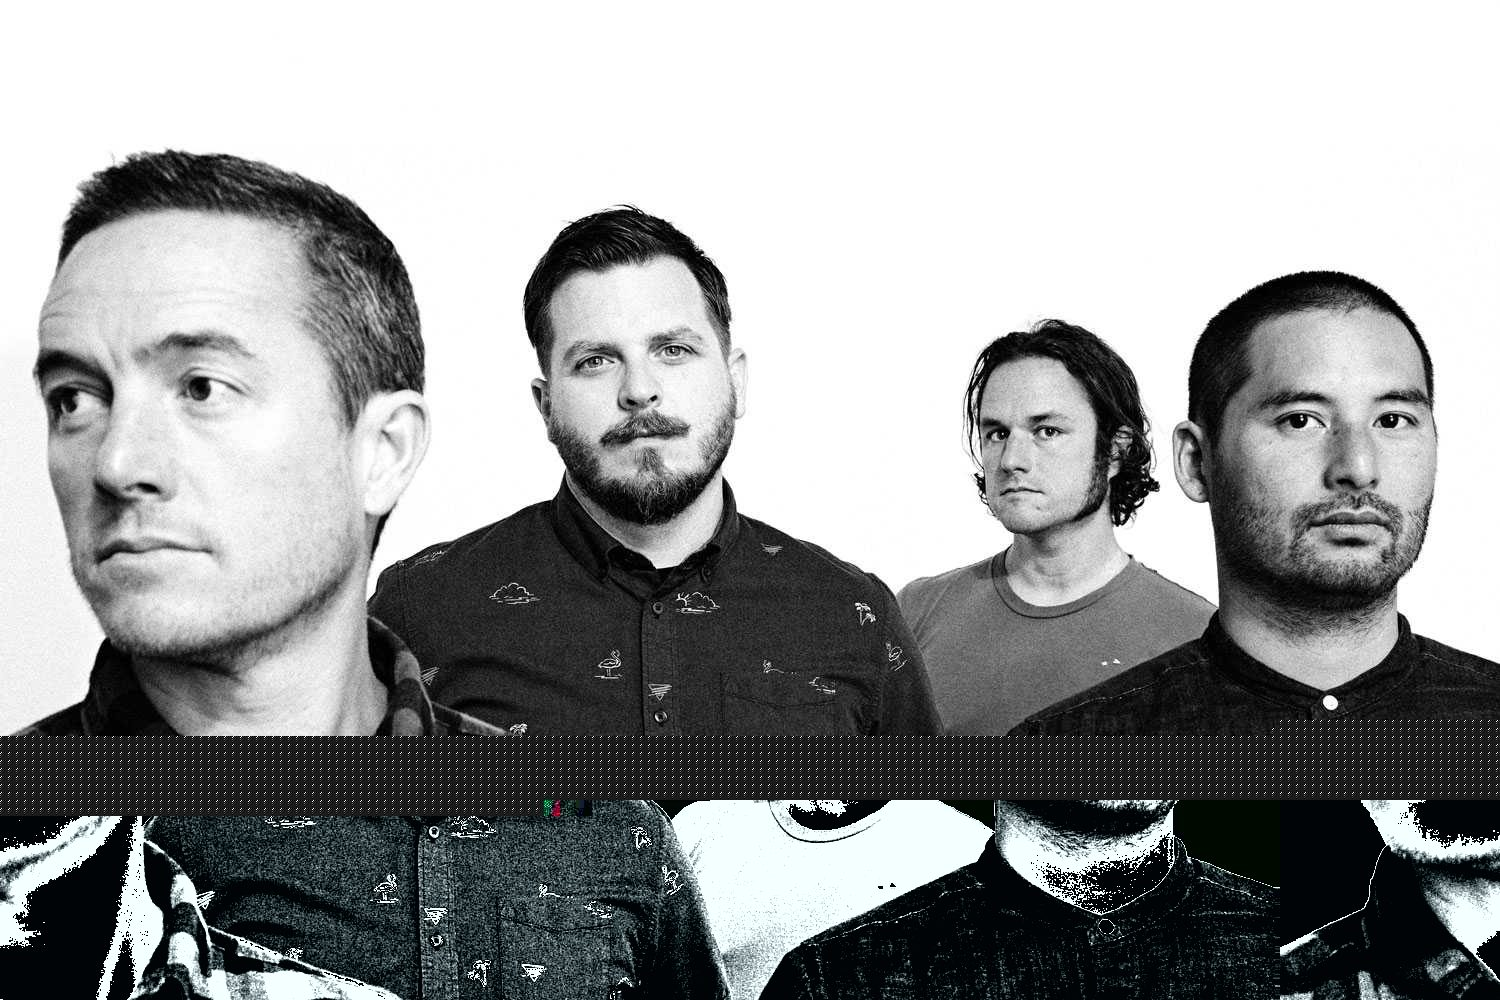 Thrice are releasing a new album this September